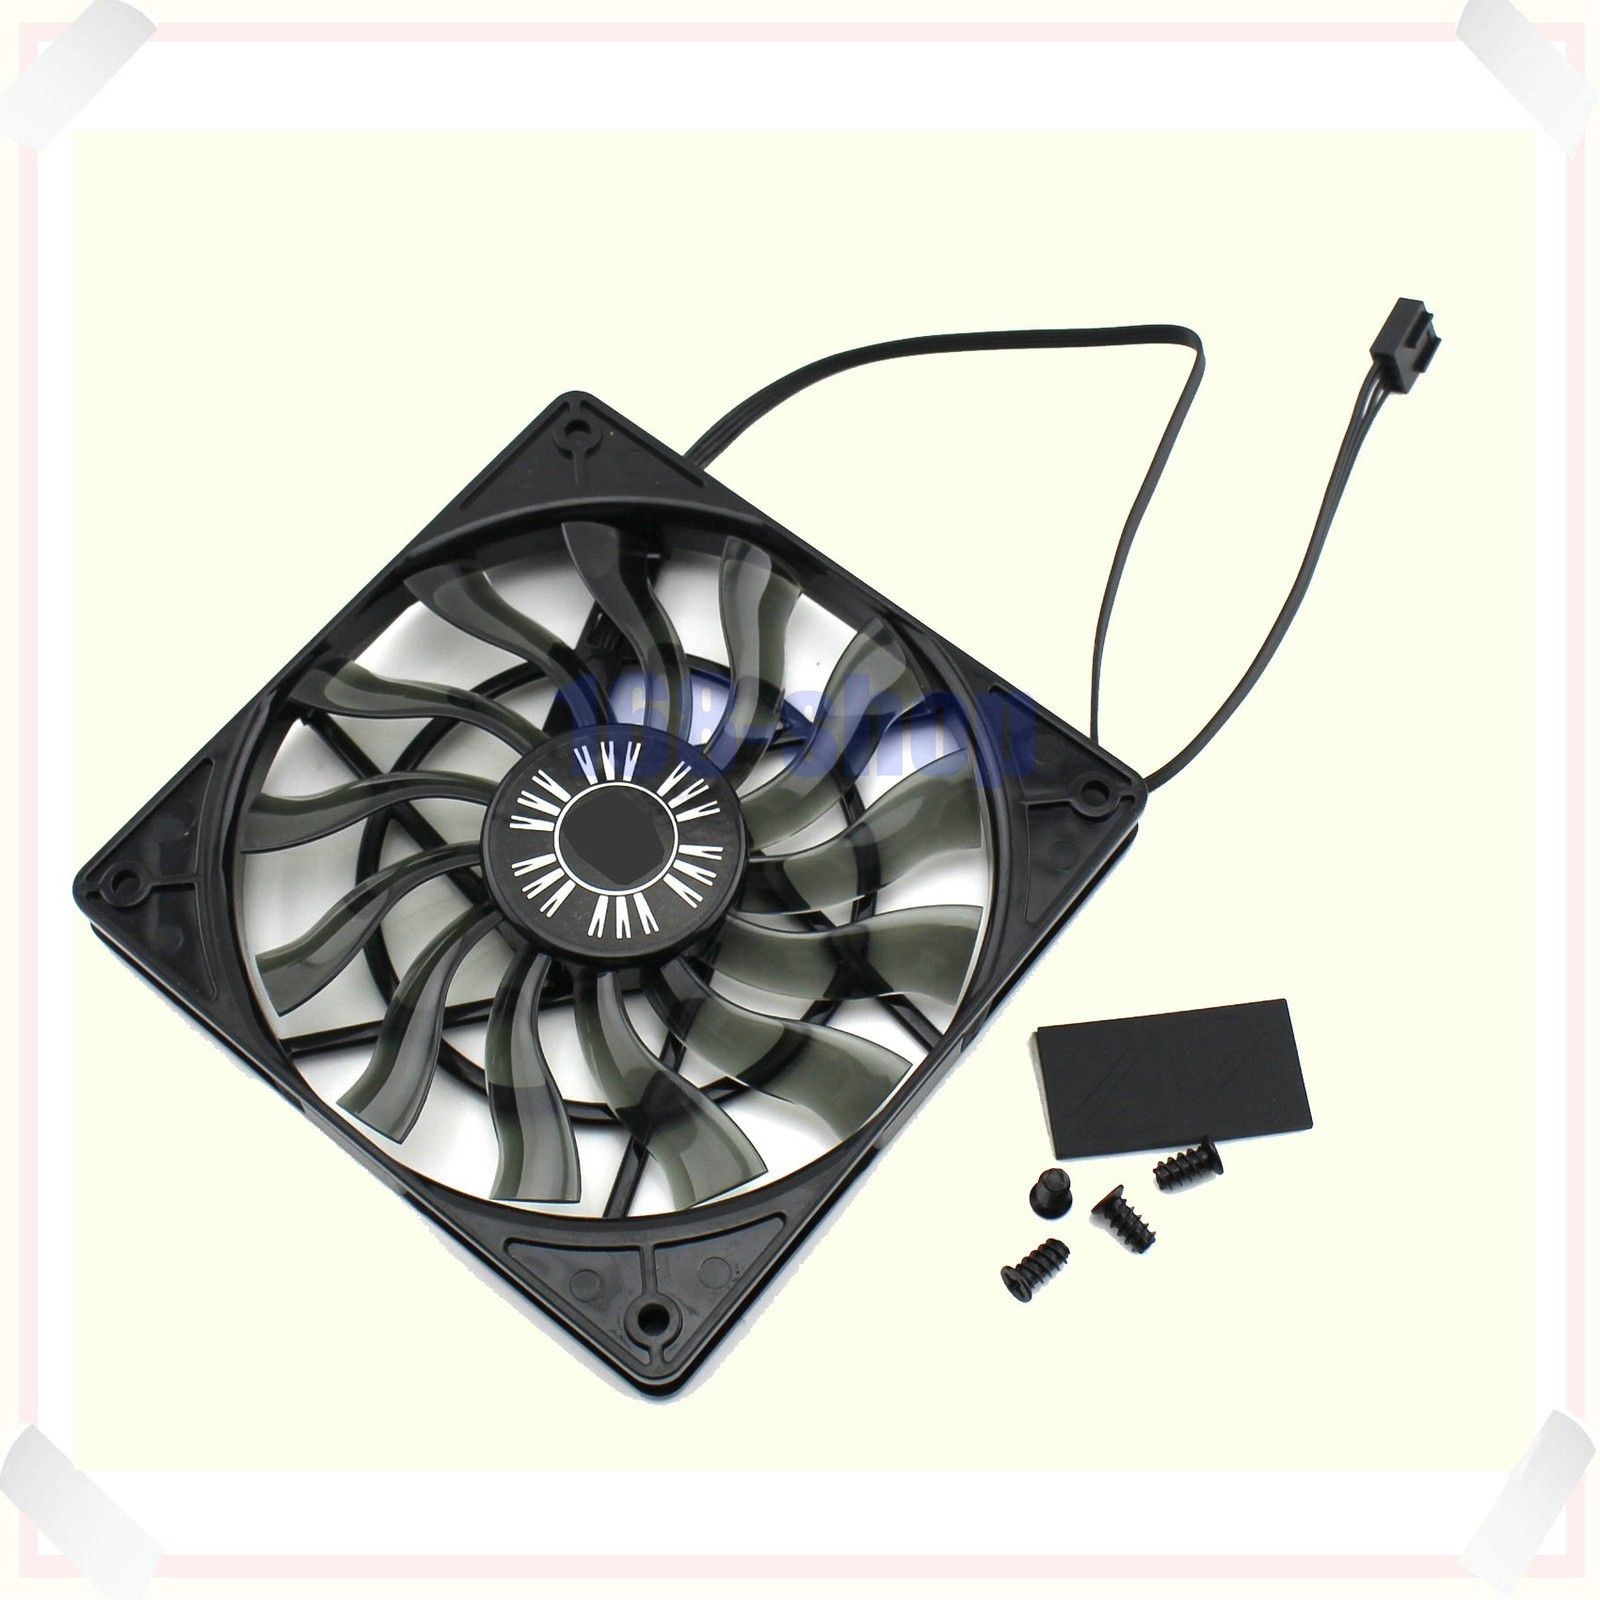 For CoolerMaster XtraFlo 120 Slim 120x120x15mm 4-pin PWM Case Fan 12cm Spare